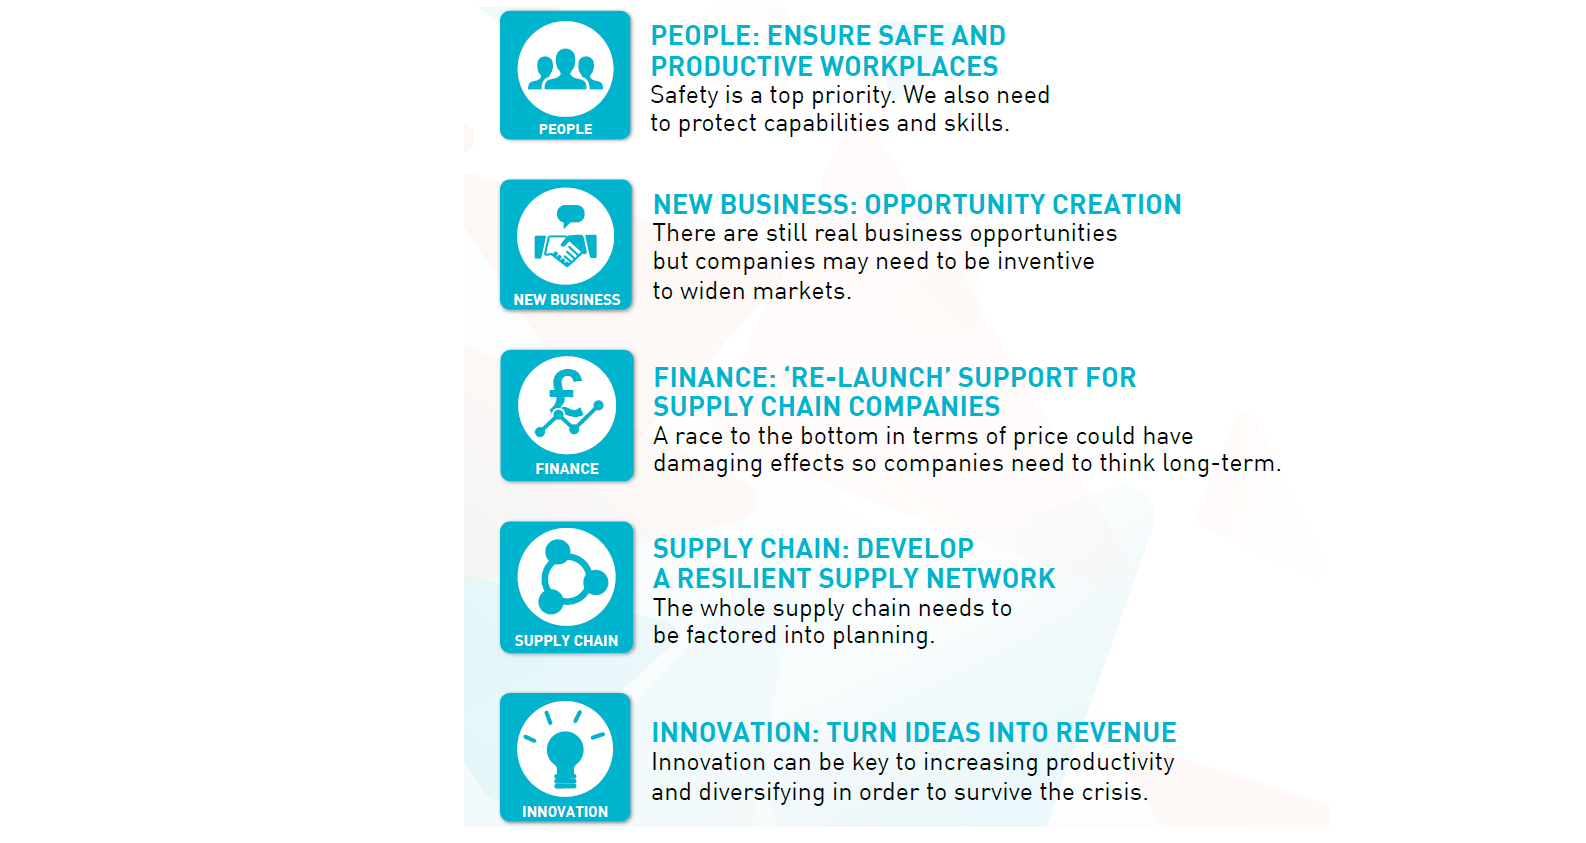 Midlands Aerospace Alliance - Five-point plan to save the UK aerospace supply chain